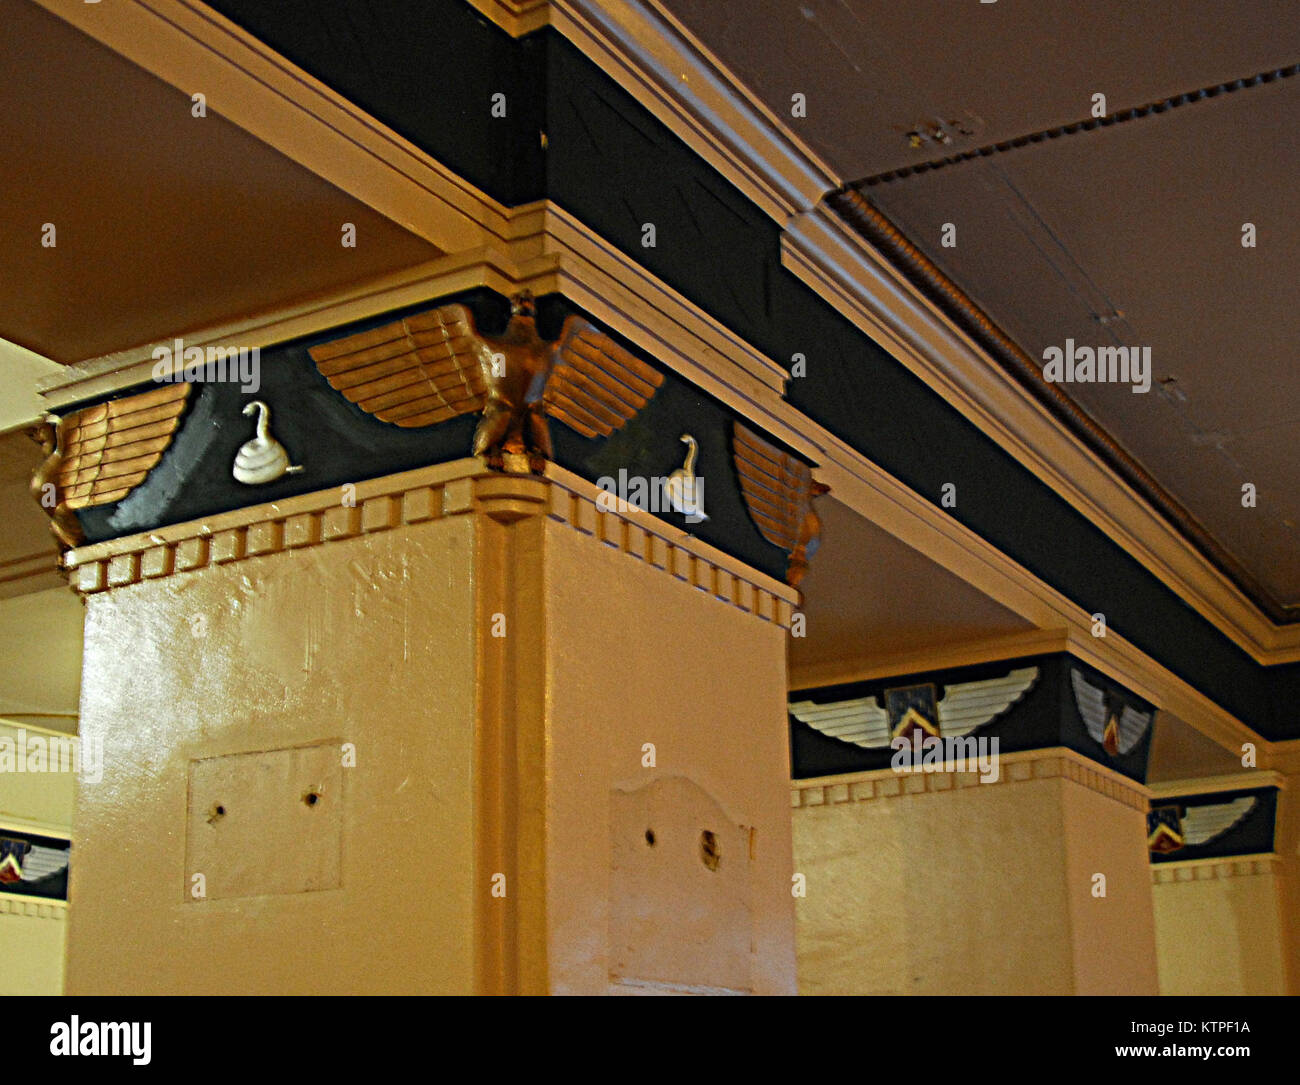 These pillars in the main entry way of the New York Army National Guard's historic Harlem Armory in New York - Stock Image